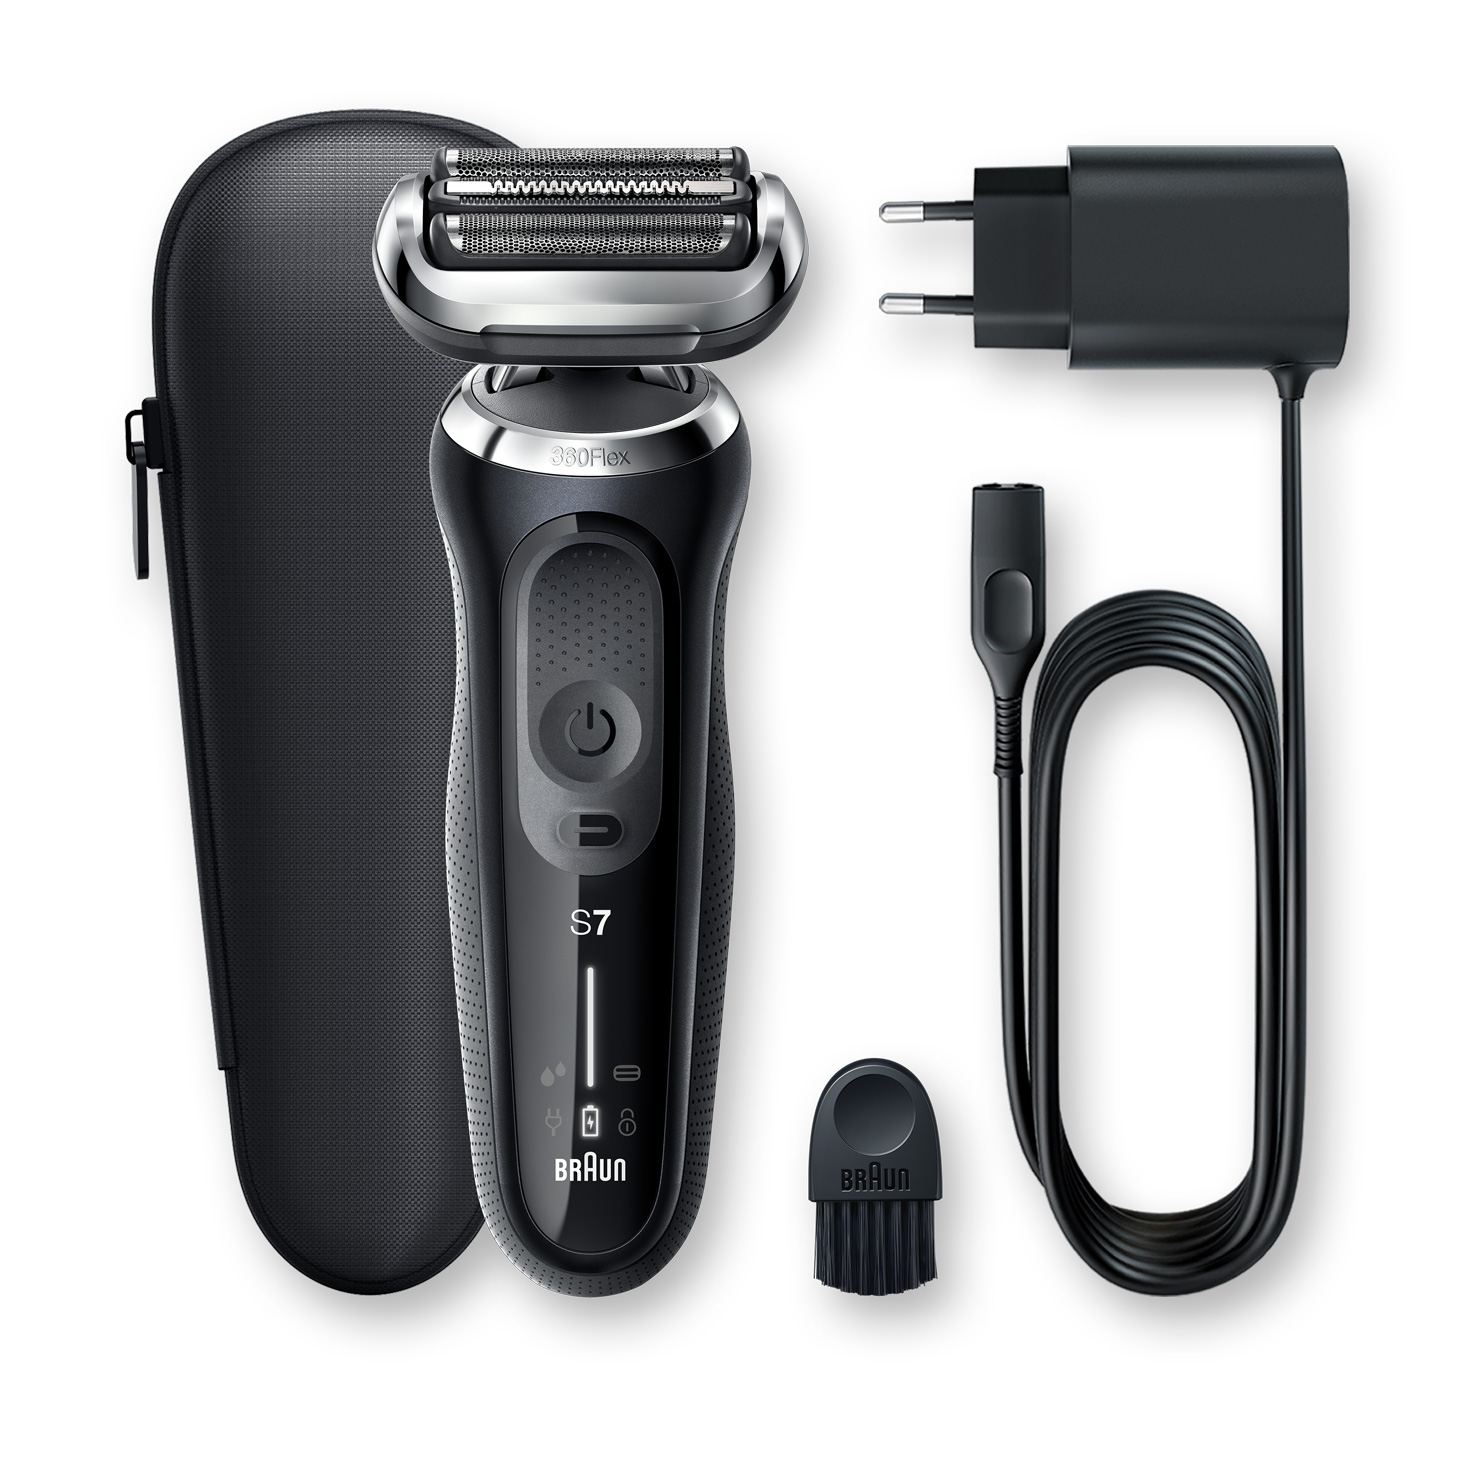 Braun Series 7 70-N1000s shaver - WiTB